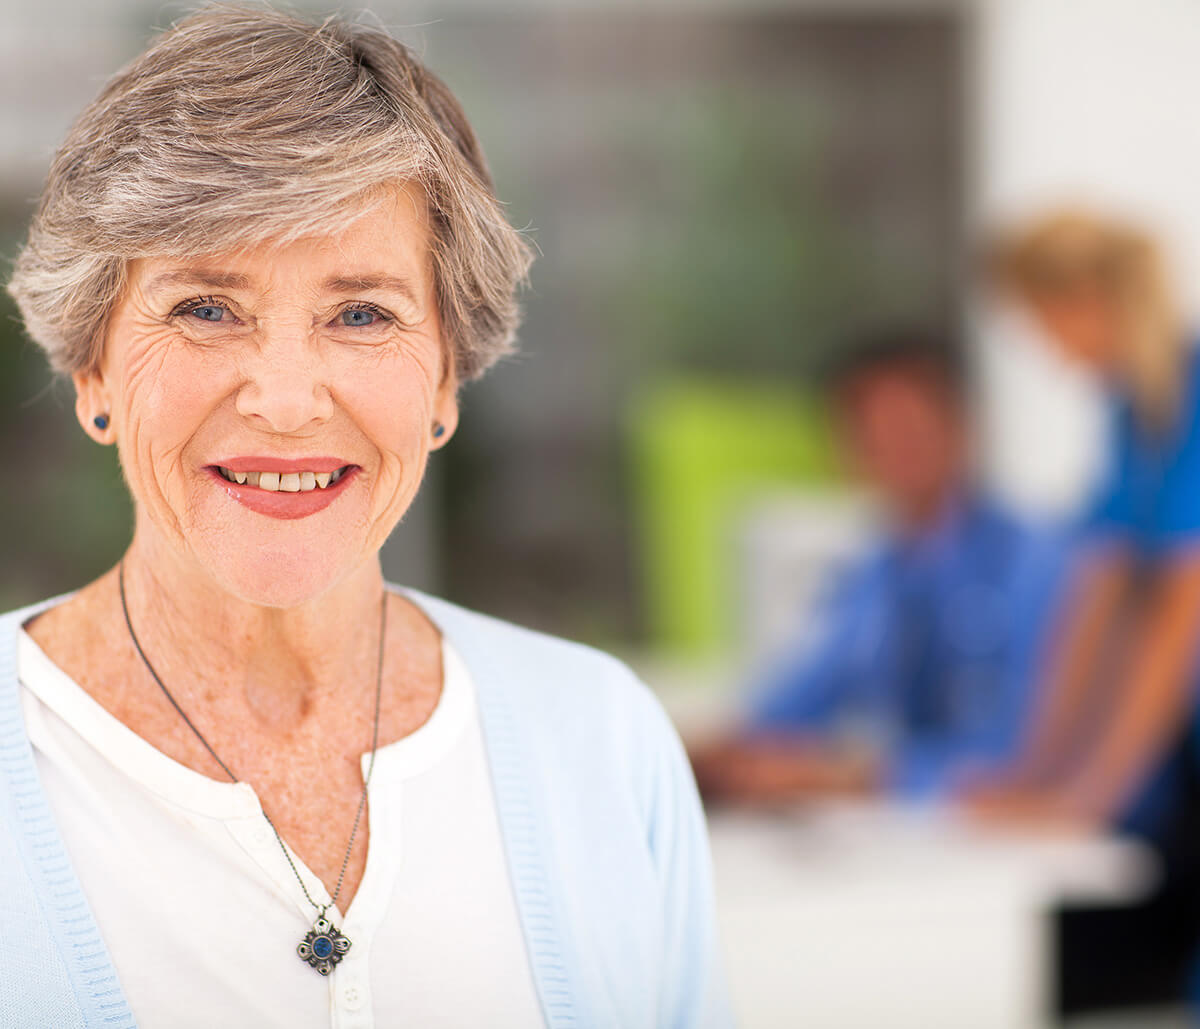 How to find a quality rheumatologist in Encinitas